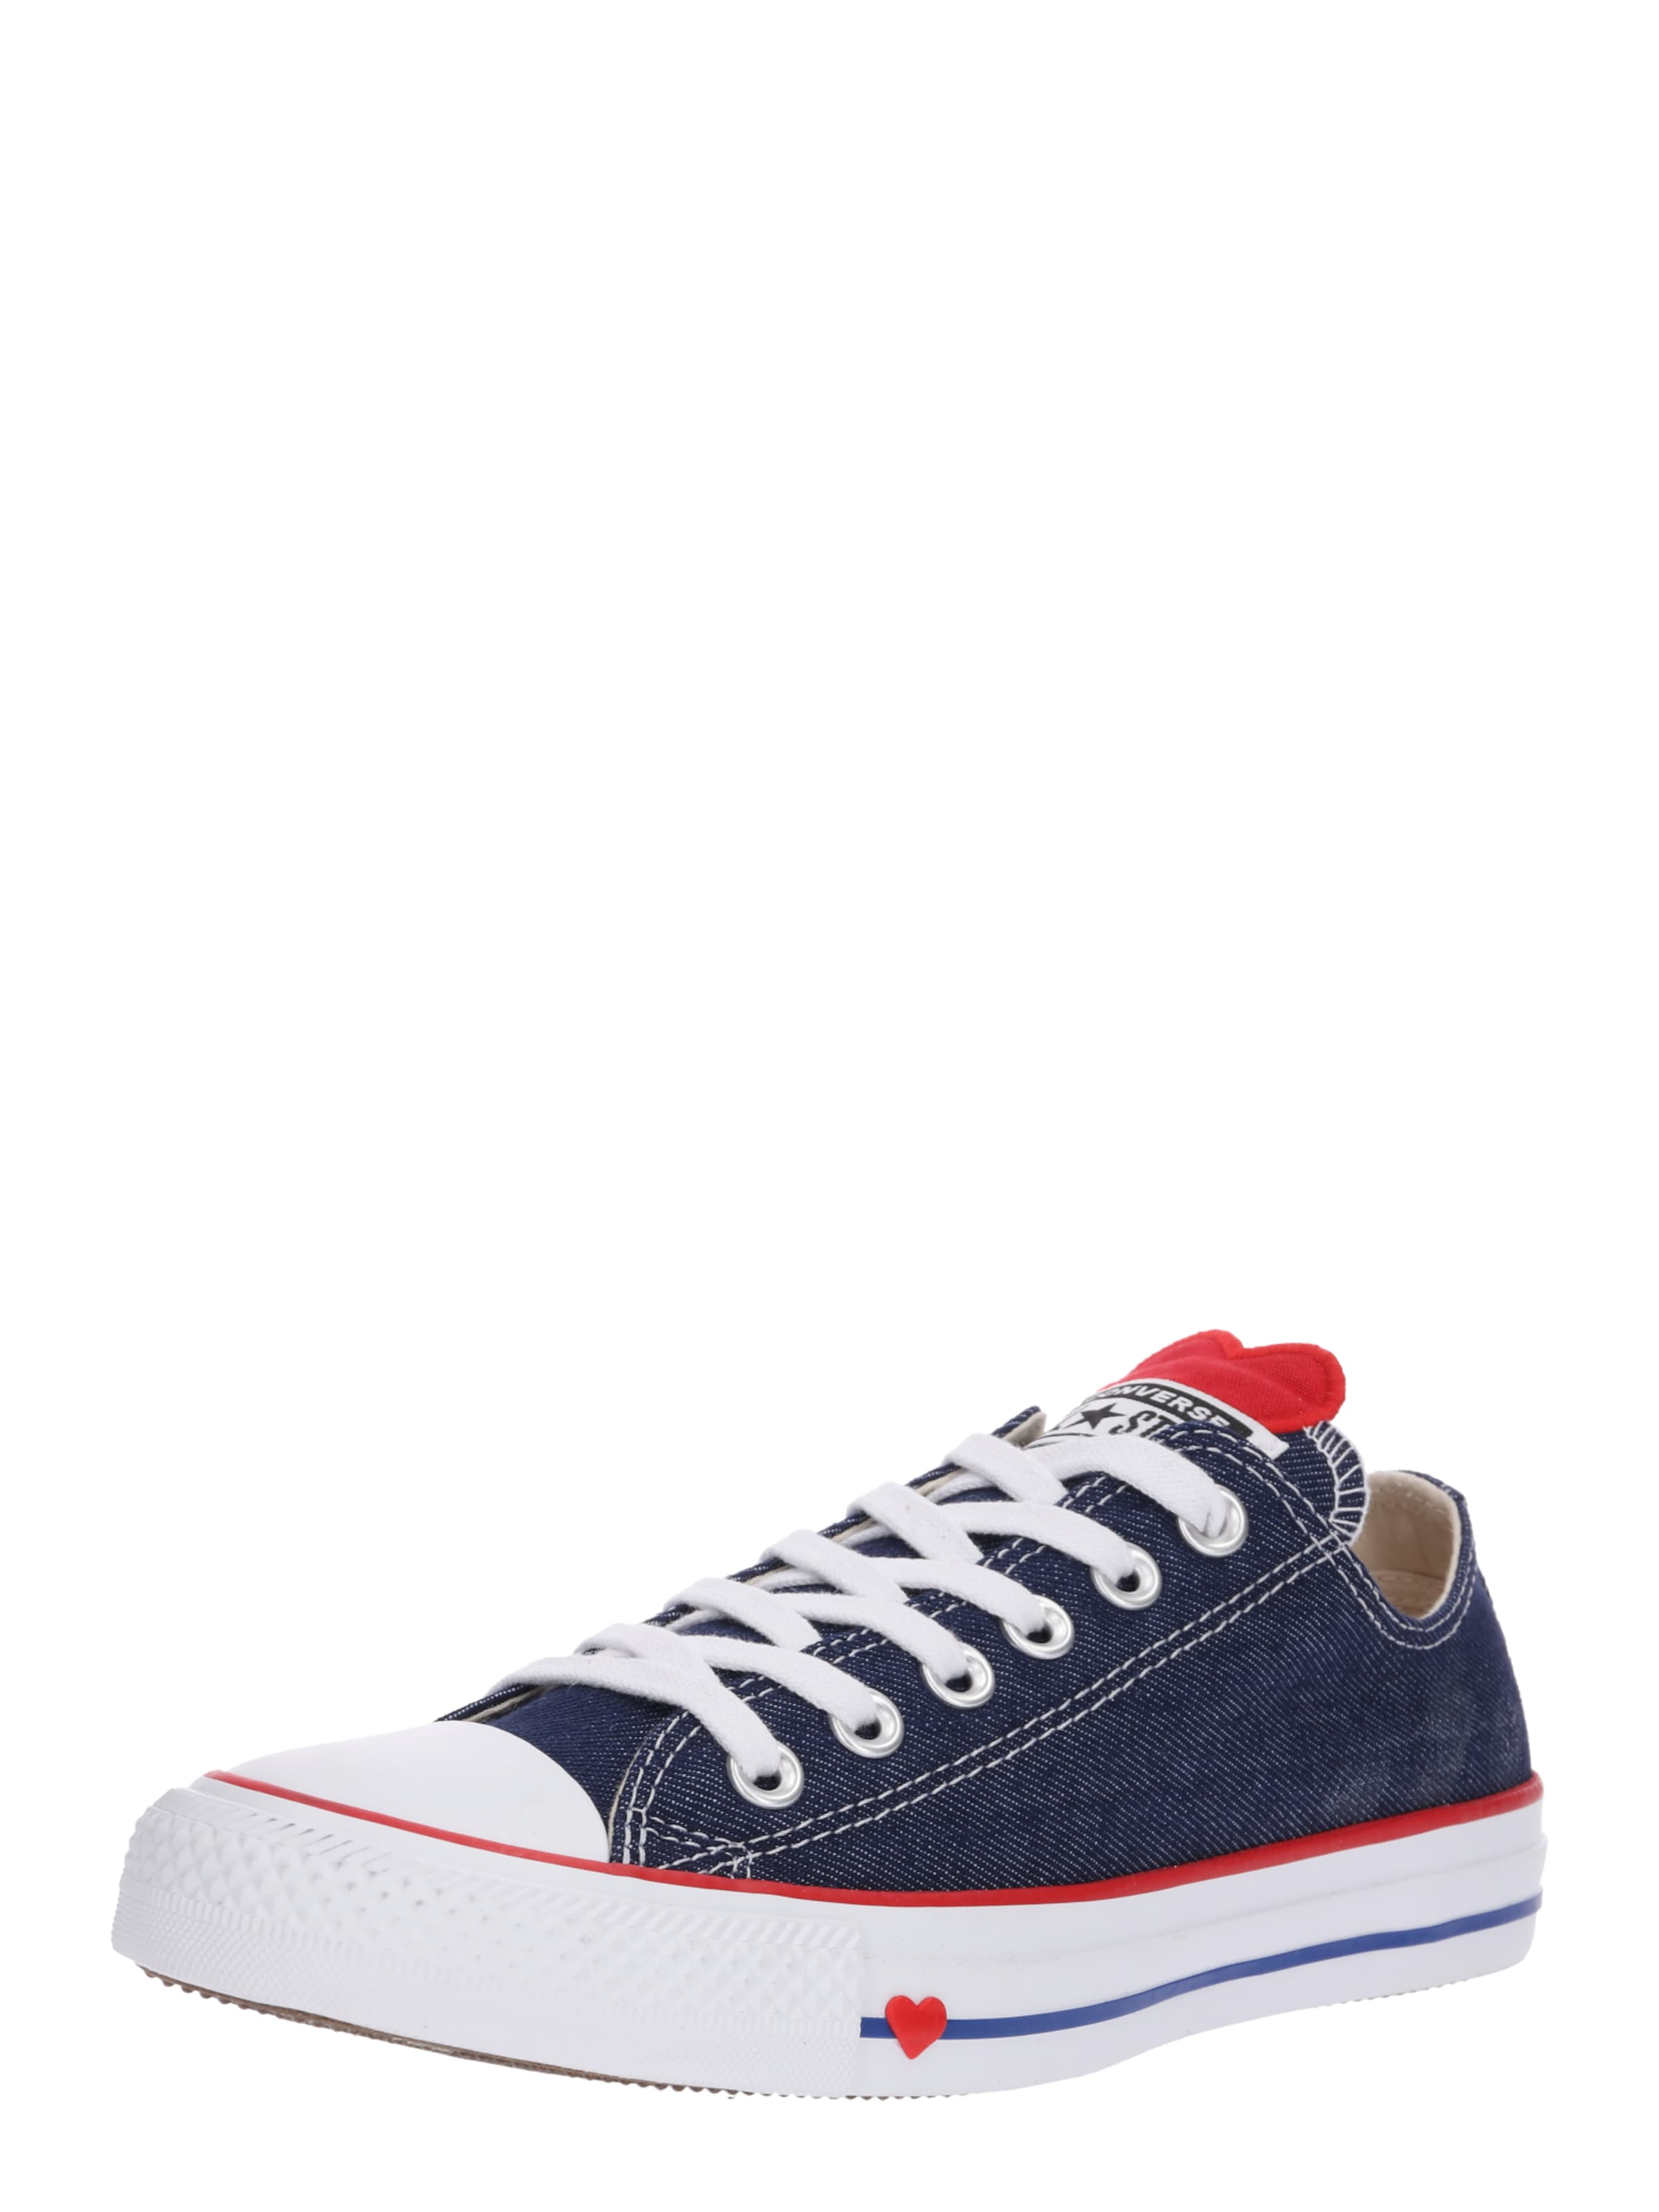 Converse DenimWeiß Blue 'chucks' Sneaker In SUzMVp